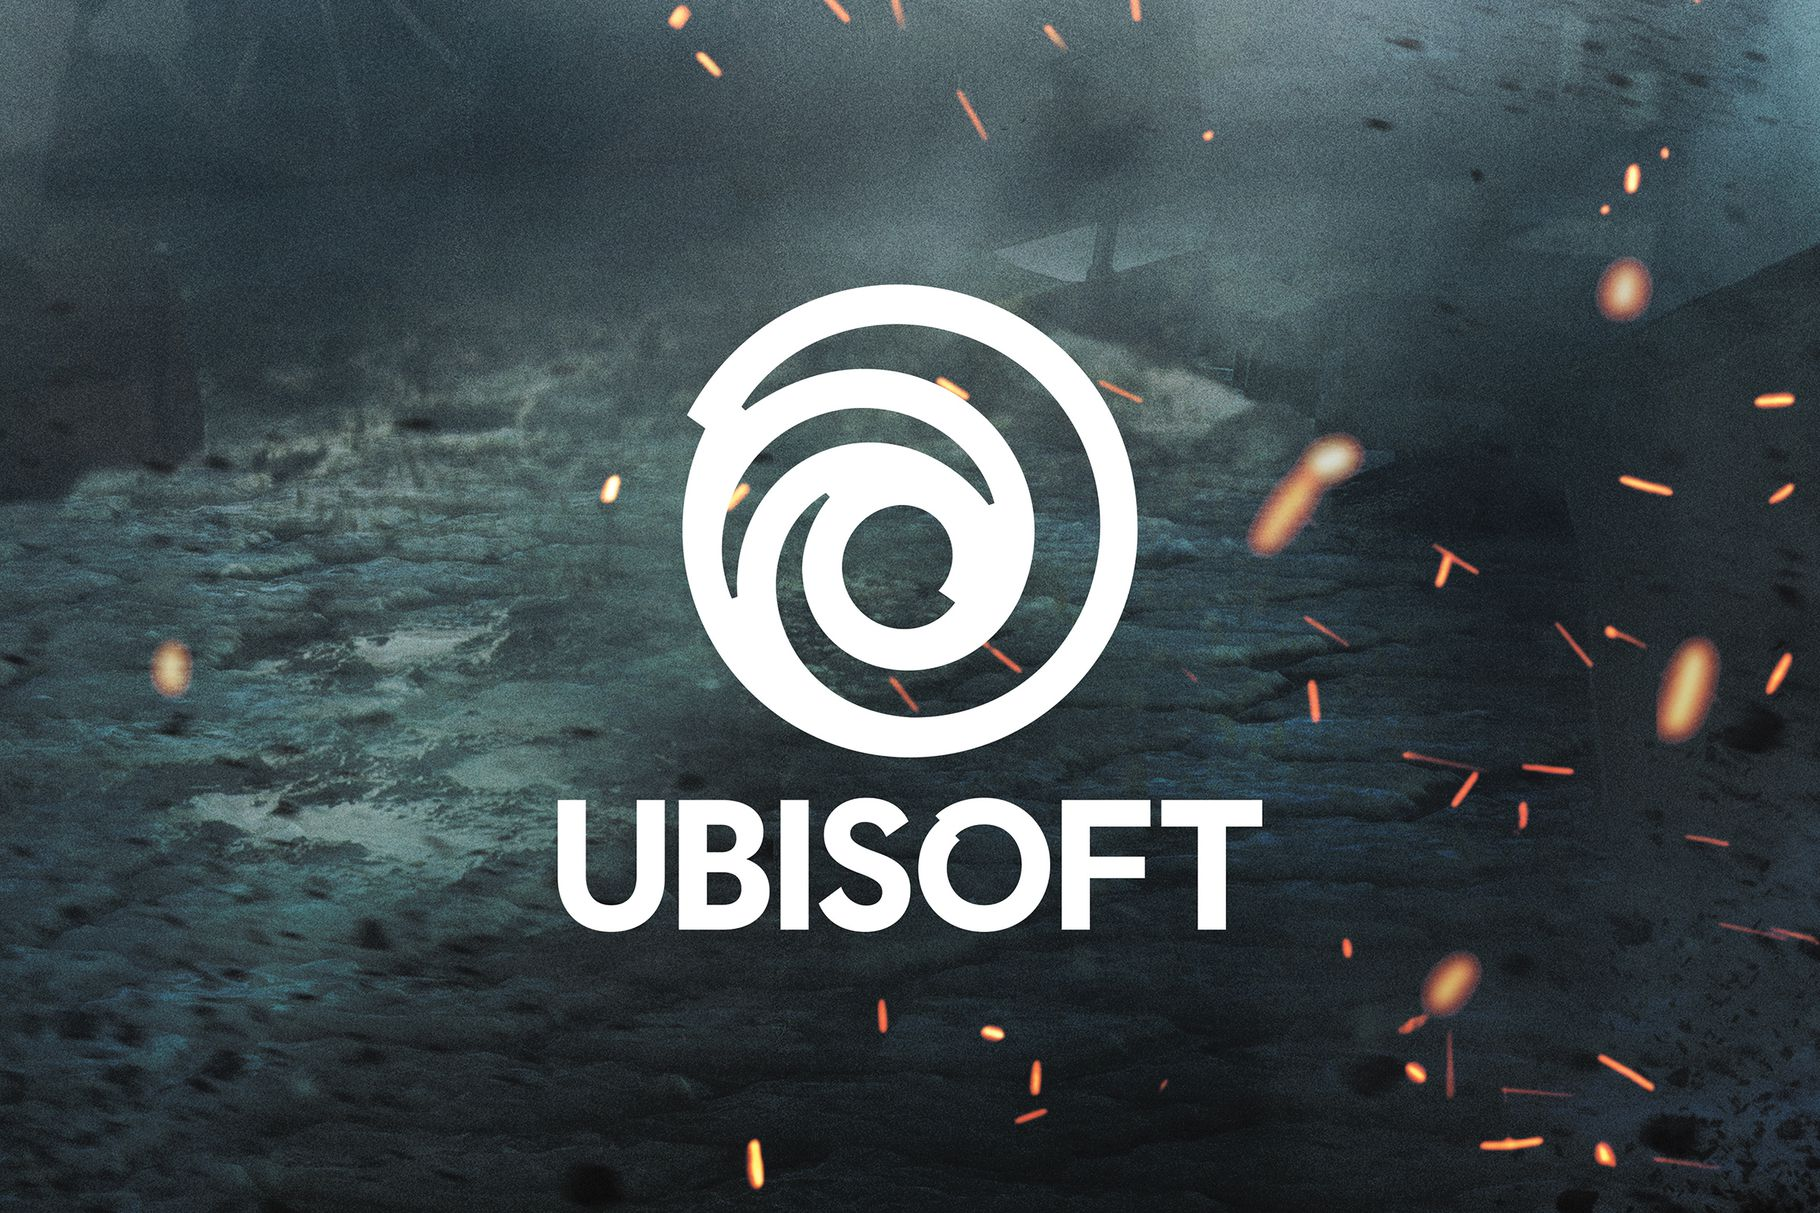 Ubisoft all'E3 2019